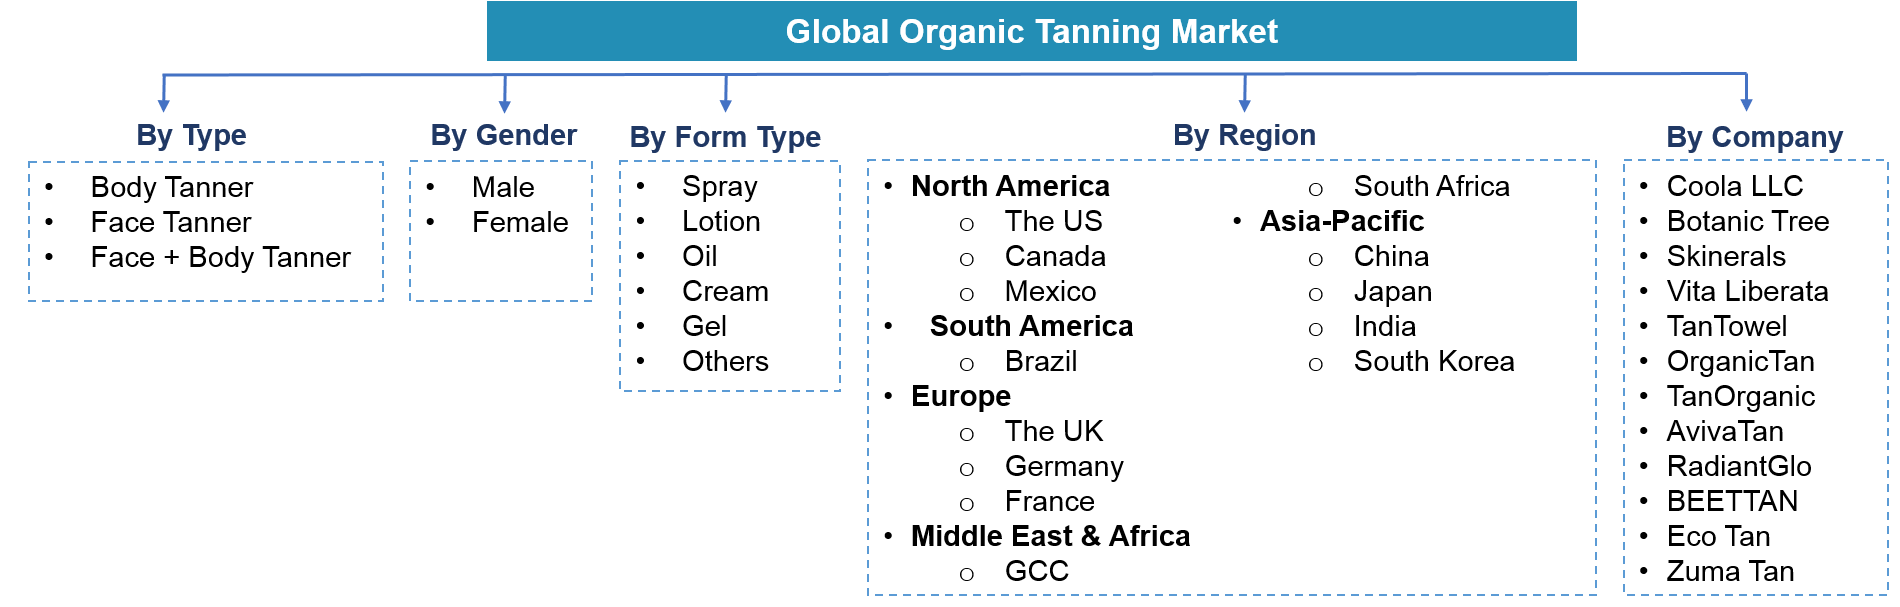 Global Organic Tanning Market Segmentation